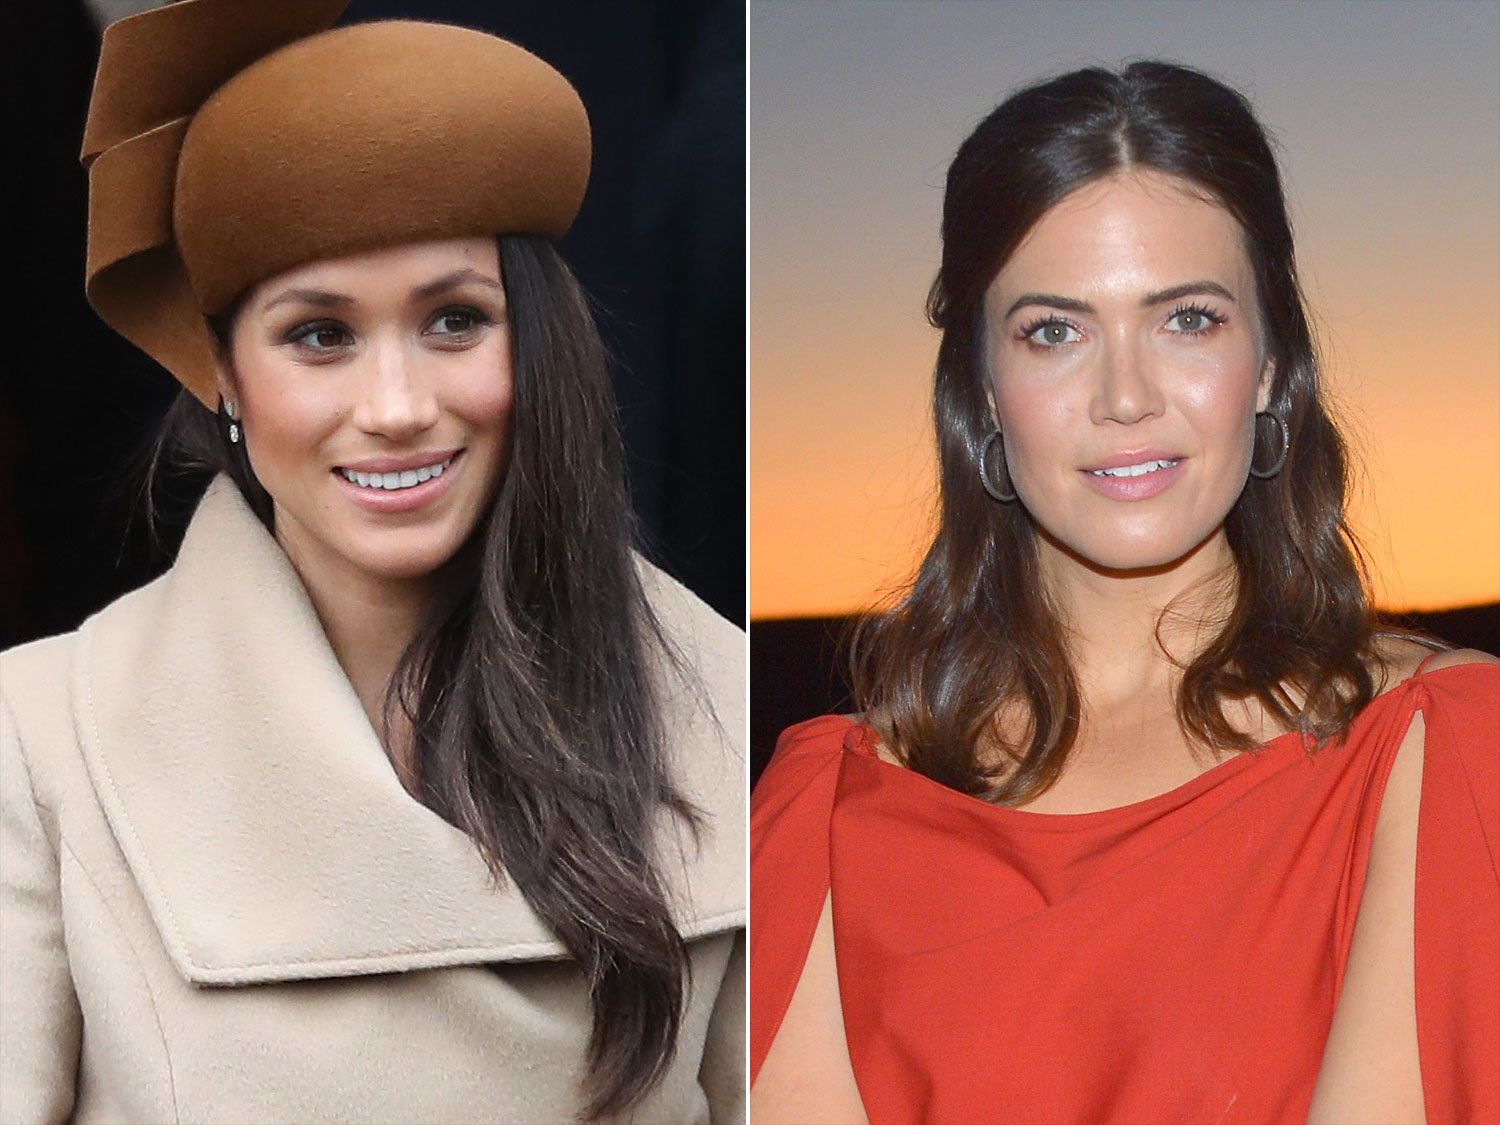 Mandy Moore opens up about her friendship with the Duchess of Sussex